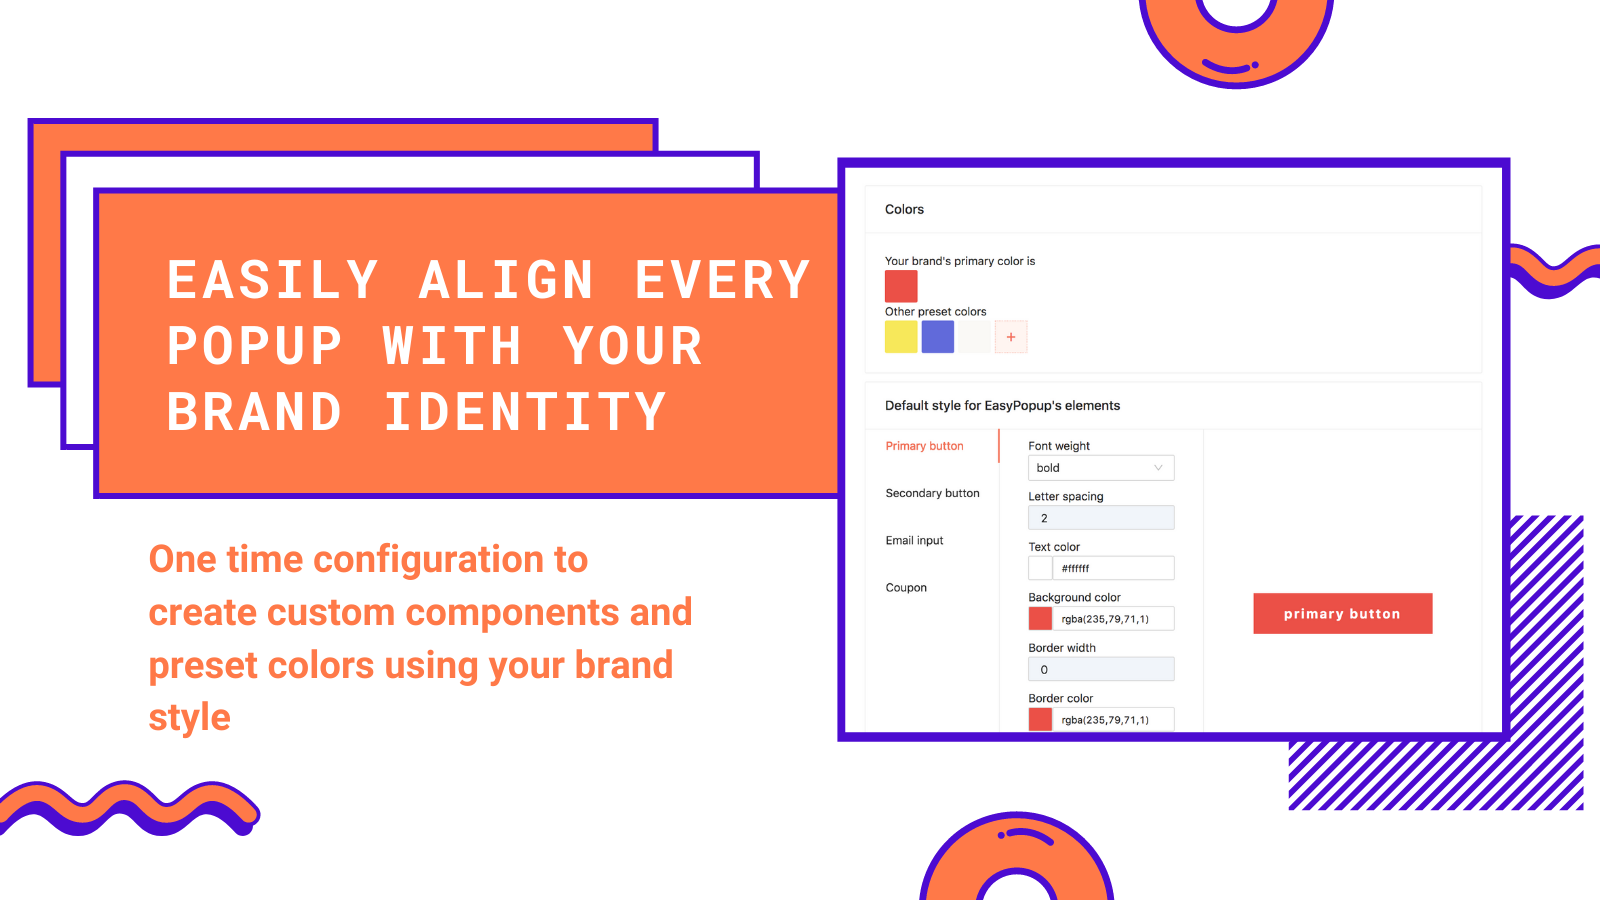 Easily align every popup with your brand identity